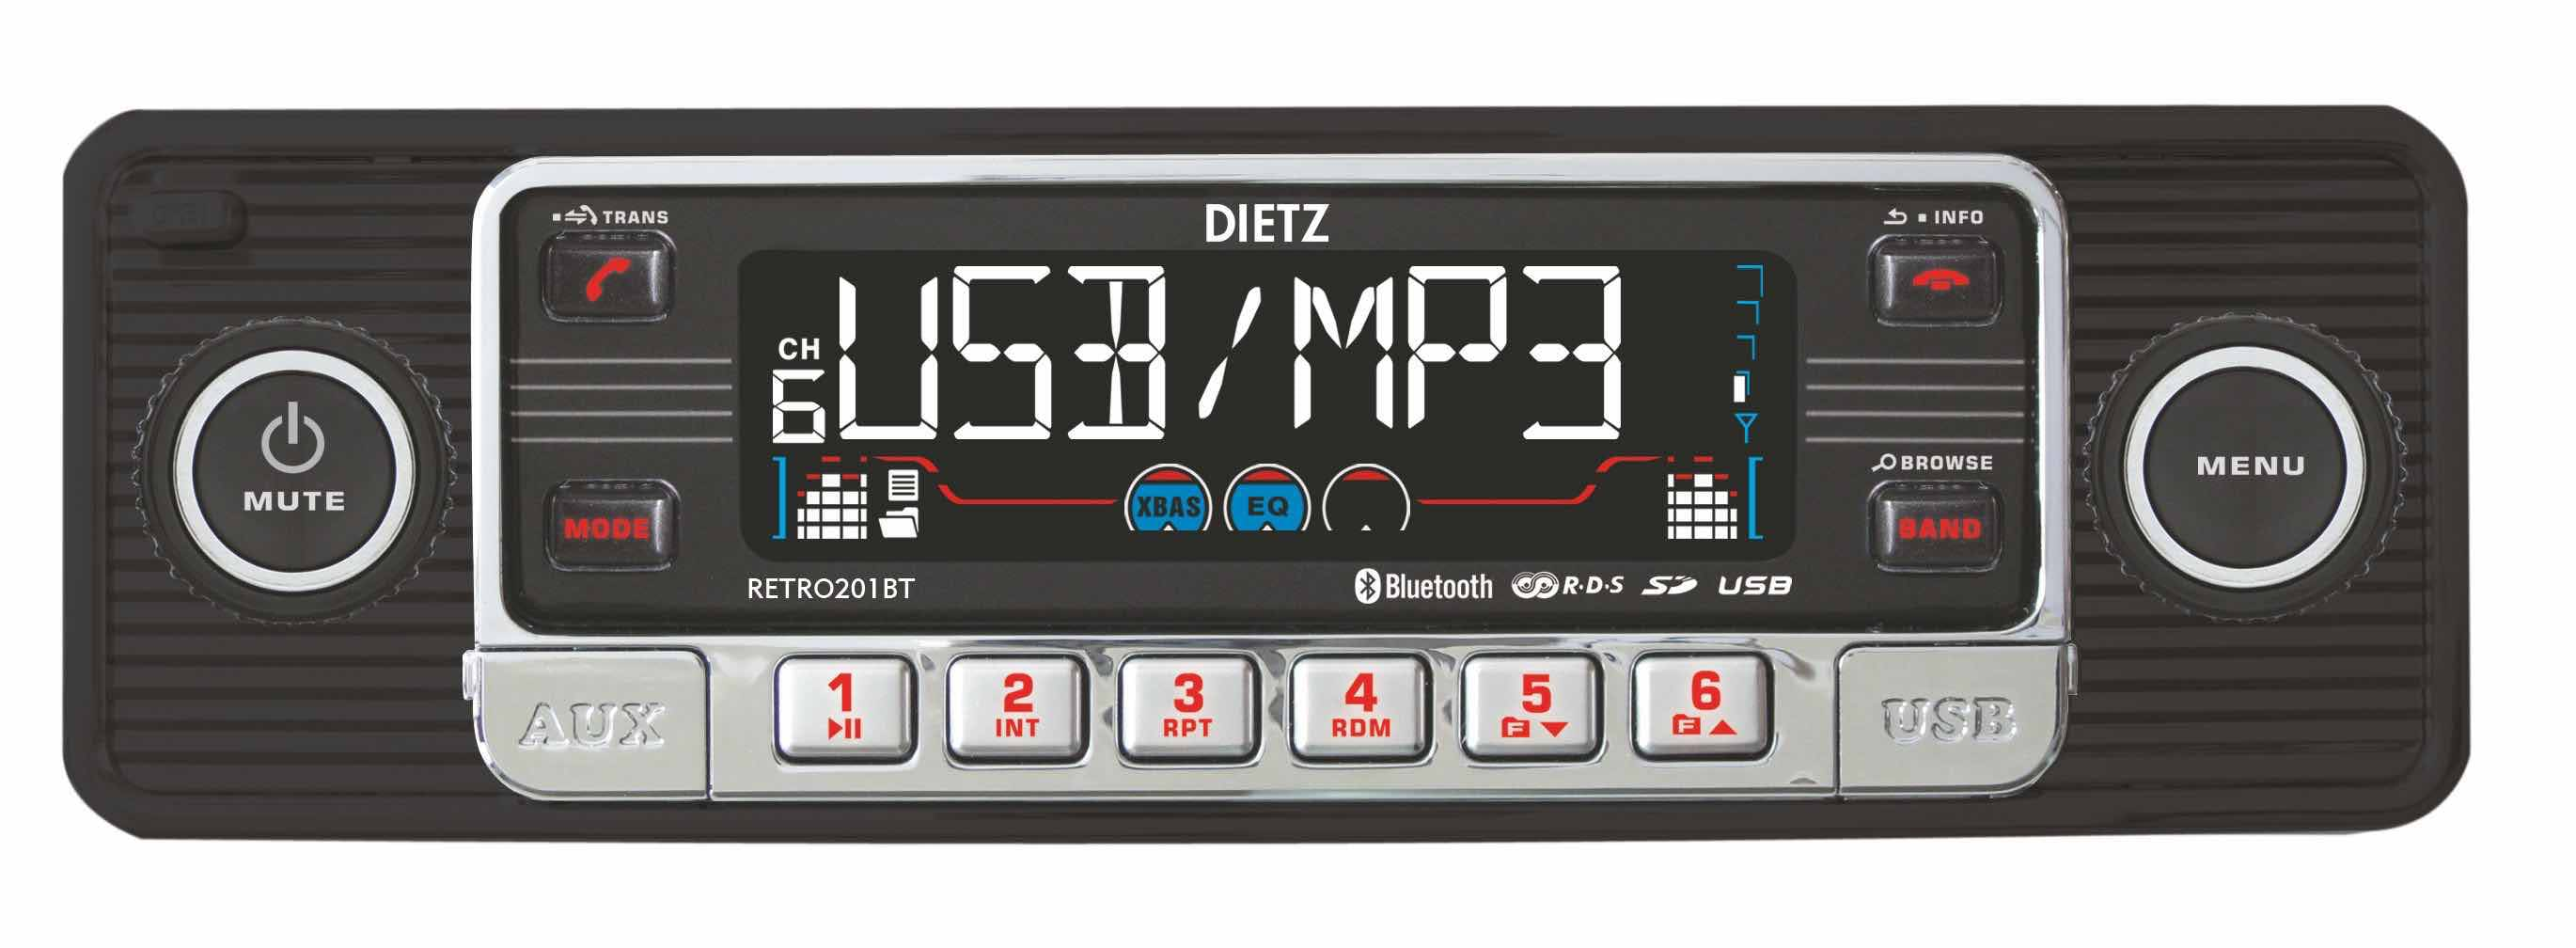 Avtoradio Dietz RETRO201BT